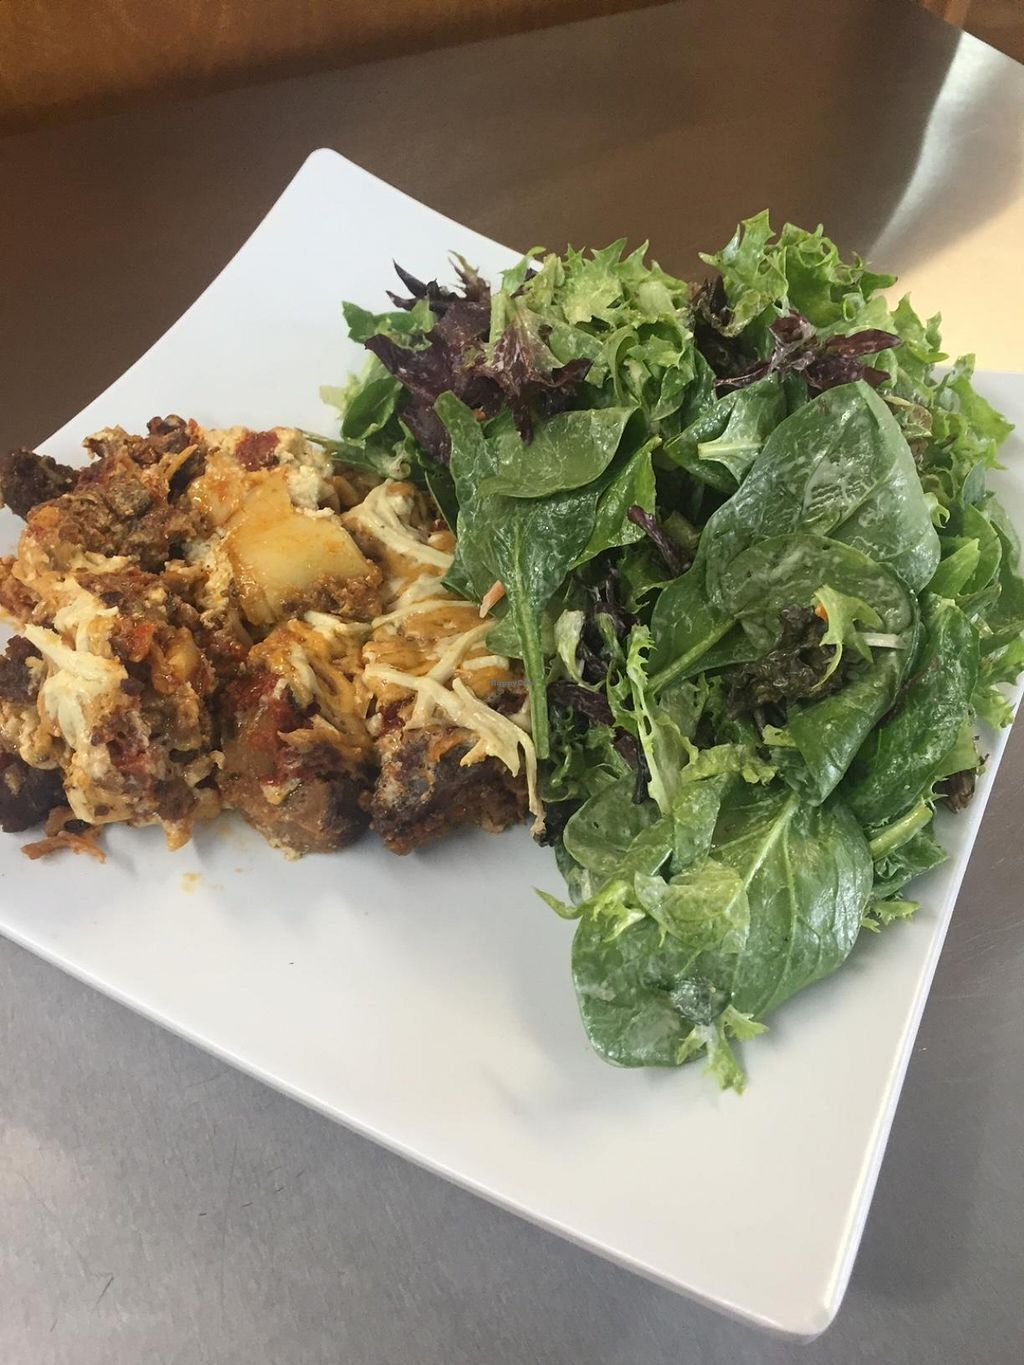 """Photo of CLOSED: Big Earth Cafe  by <a href=""""/members/profile/Doright"""">Doright</a> <br/>Vegan lasagna  <br/> April 24, 2016  - <a href='/contact/abuse/image/65592/146010'>Report</a>"""